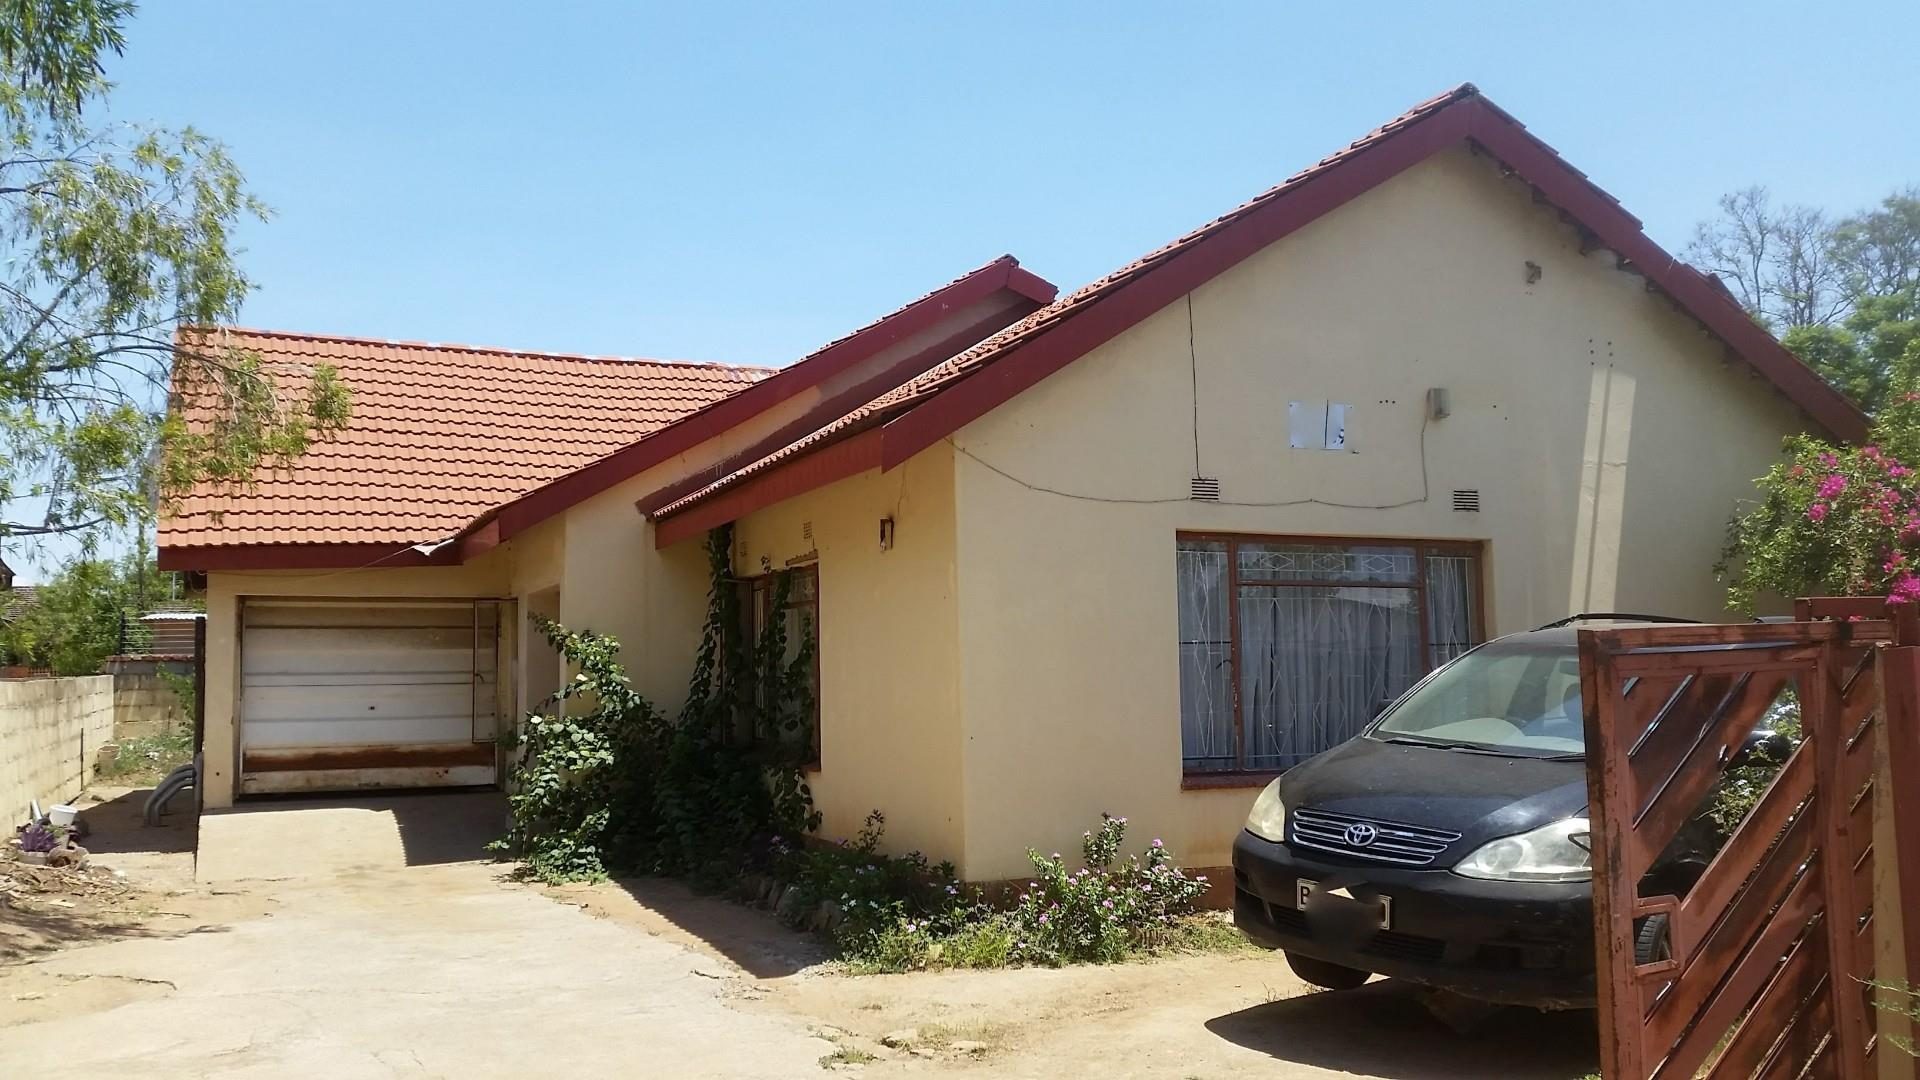 3 Bedroom House For Sale in Broadhurst